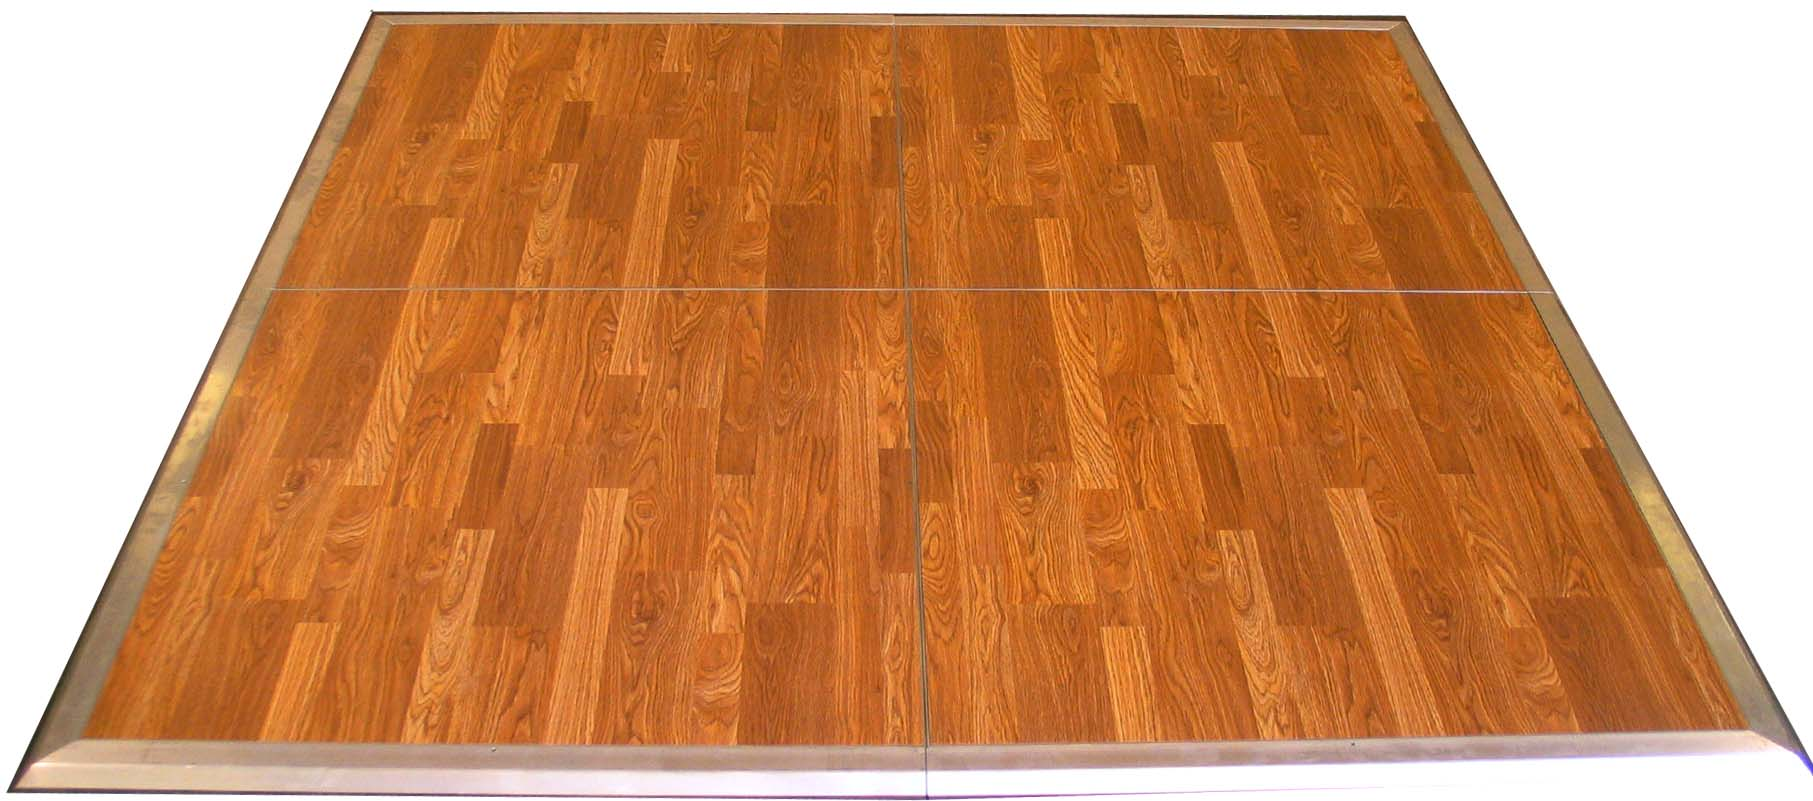 Wood parquet dance floor for weddings and parties from 5 for At floor or on floor